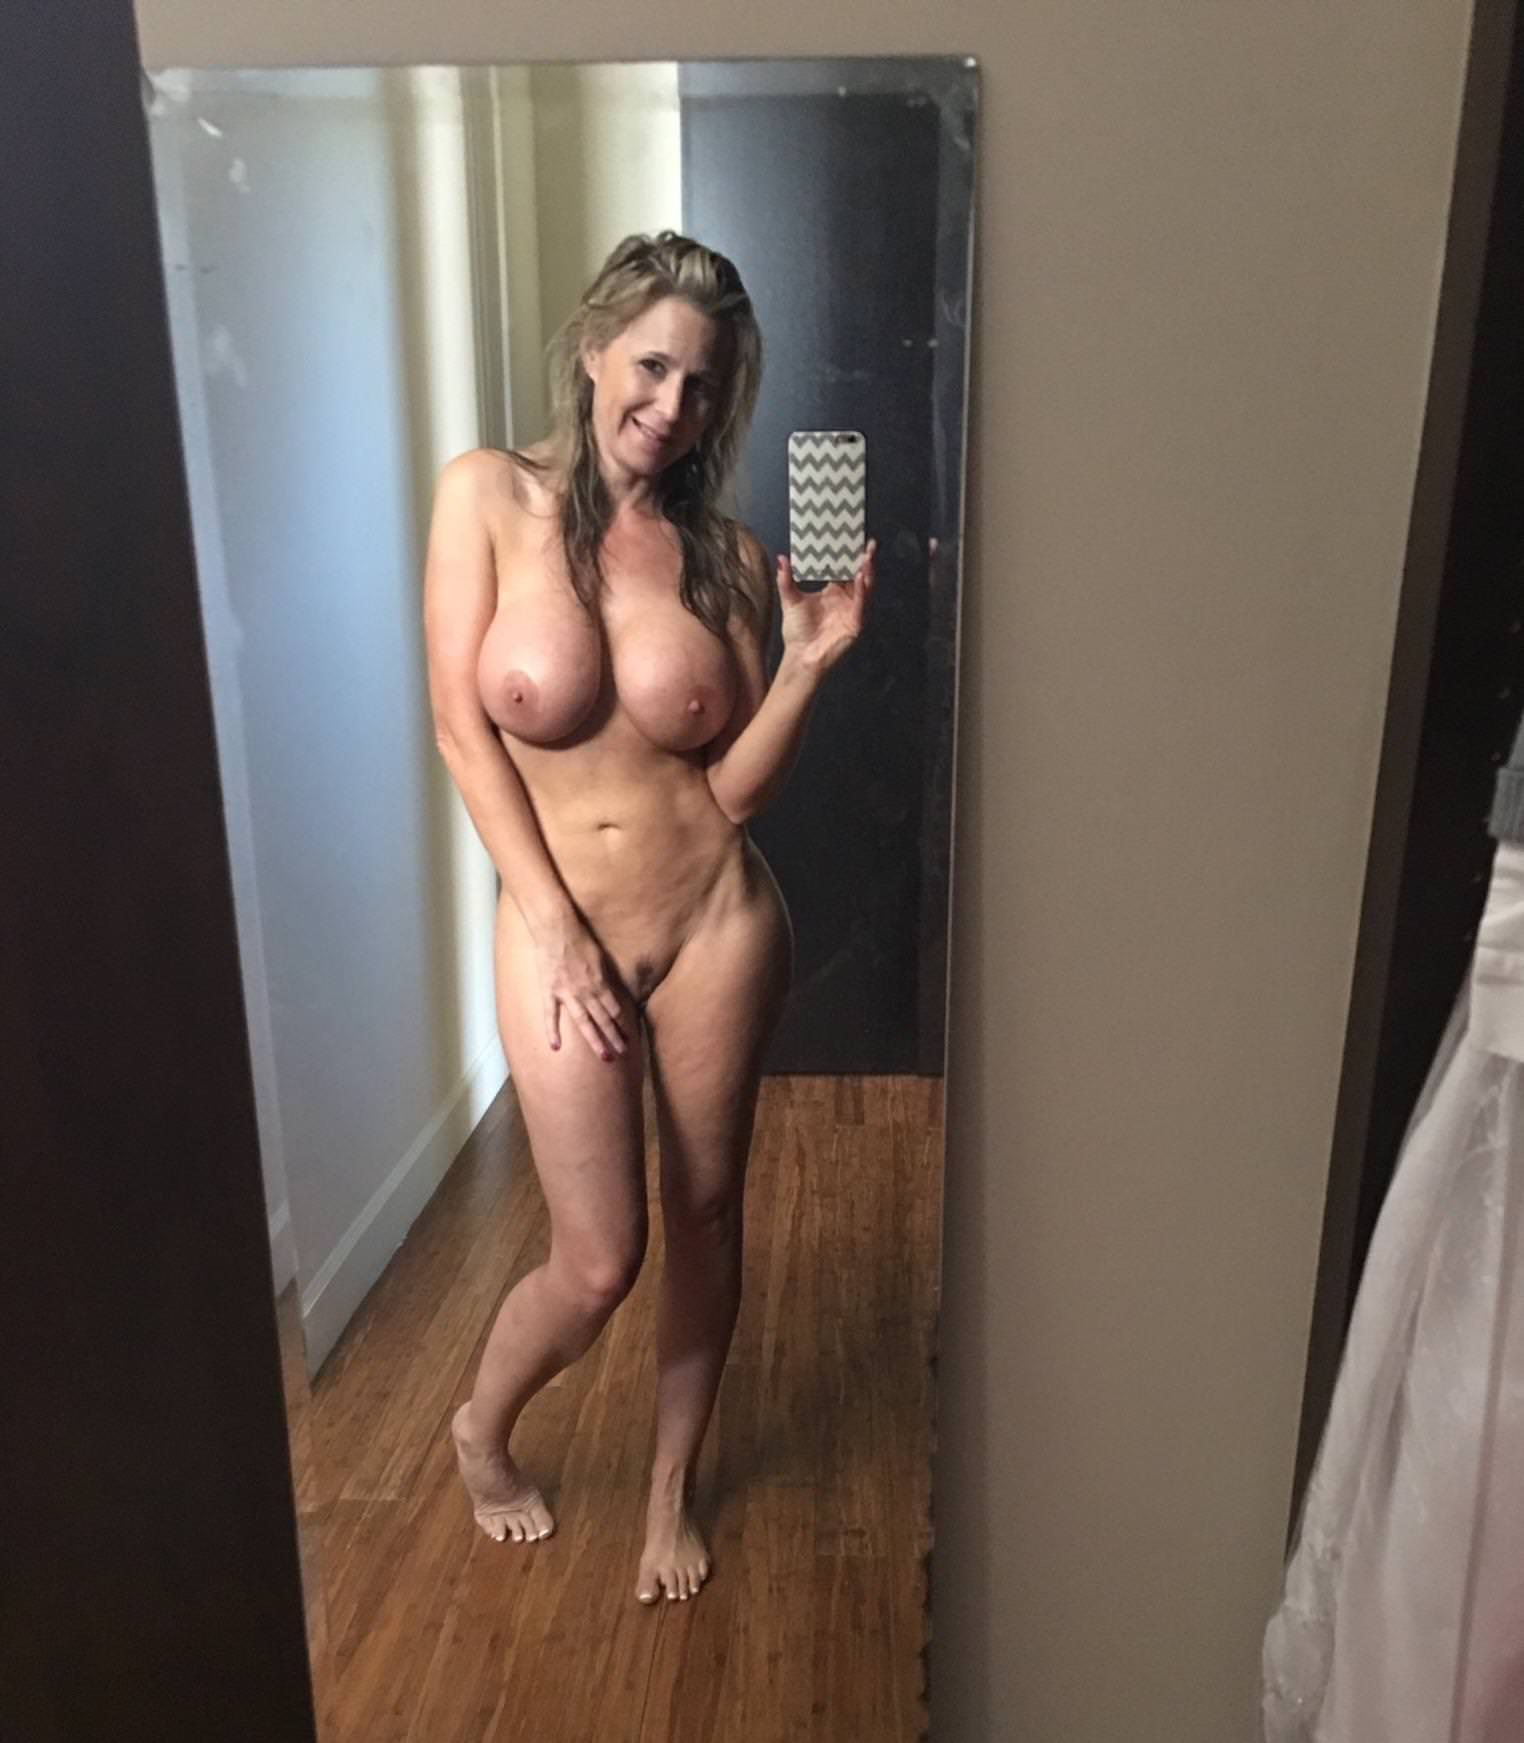 Gorgeous MILF takes selfie while showing nice tits and perfect body. Sexy blonde wife bares her big boobs during self shot action